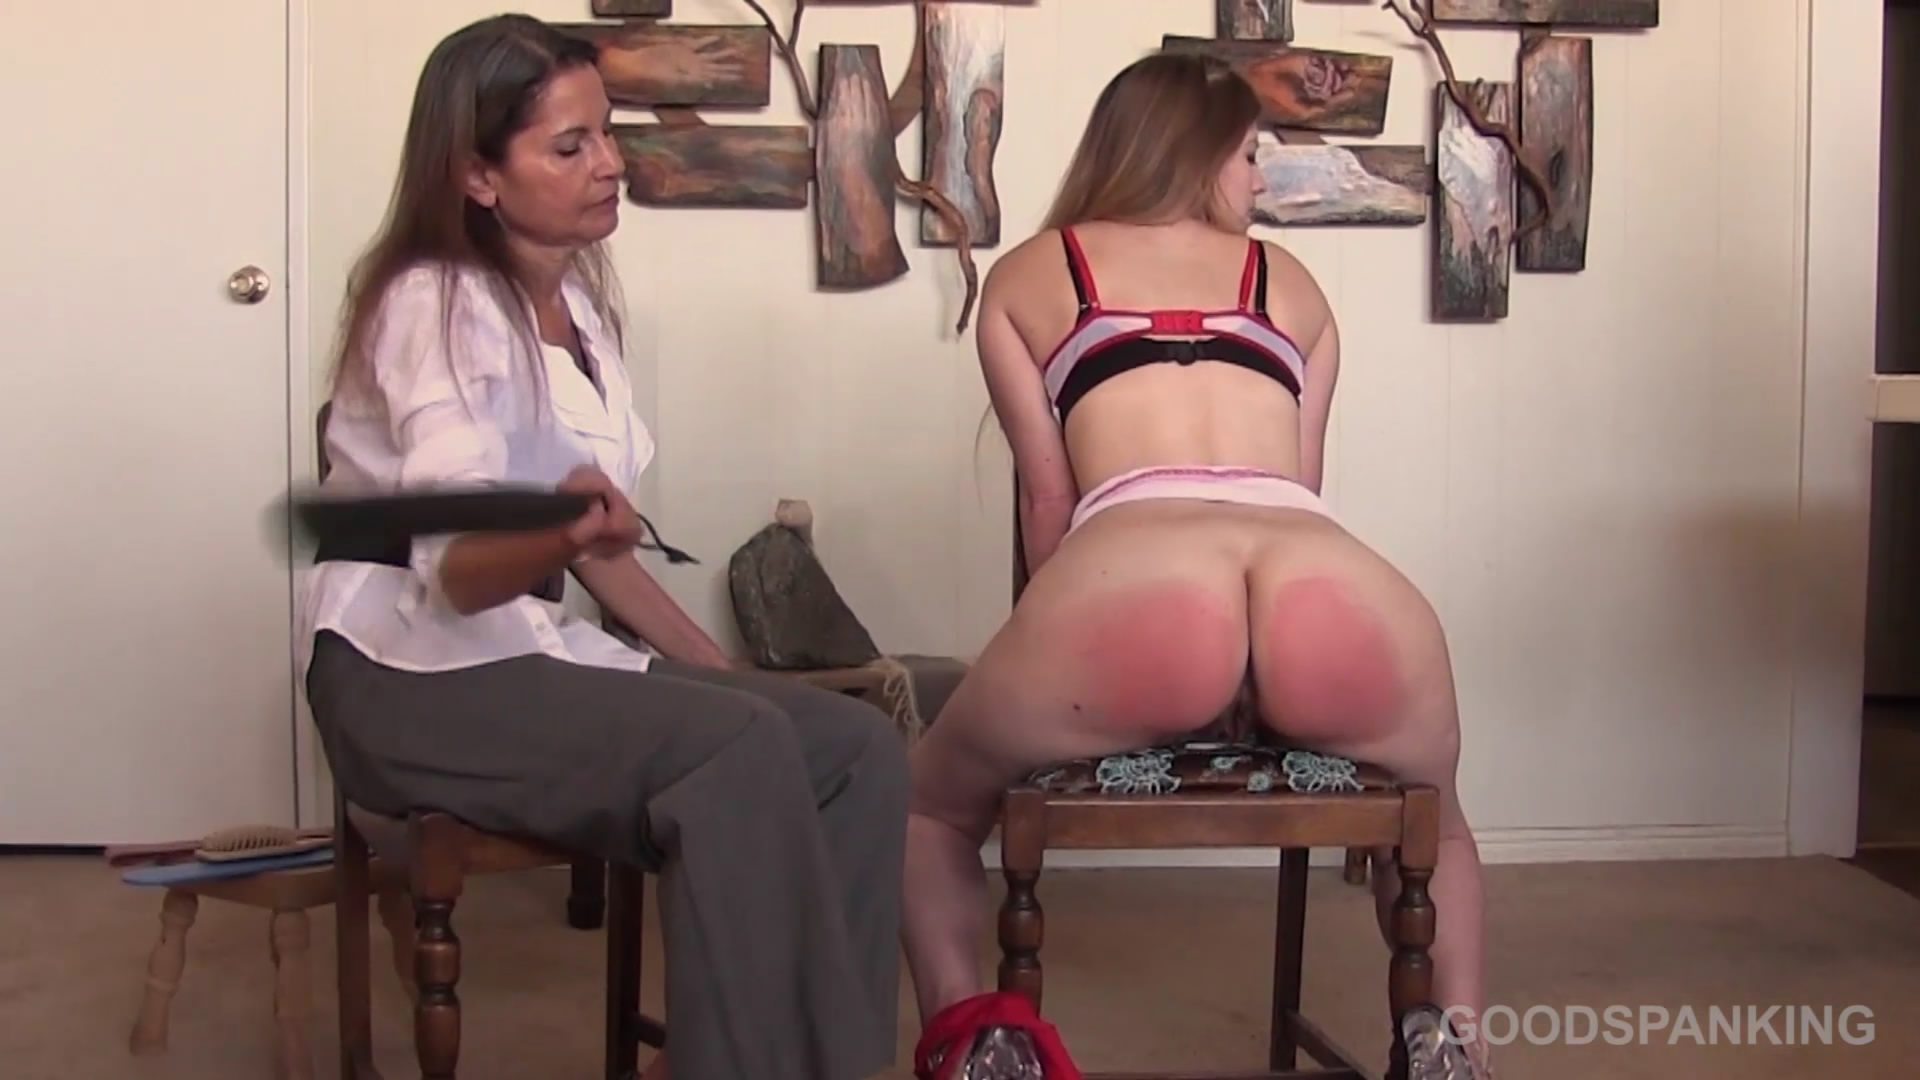 Good Spanking – MP4/Full HD – CHELSEA PFEIFFER,HARLEY HAVIK – ADORABLY SPANKABLE – PART TWO | MAY. 21, 19